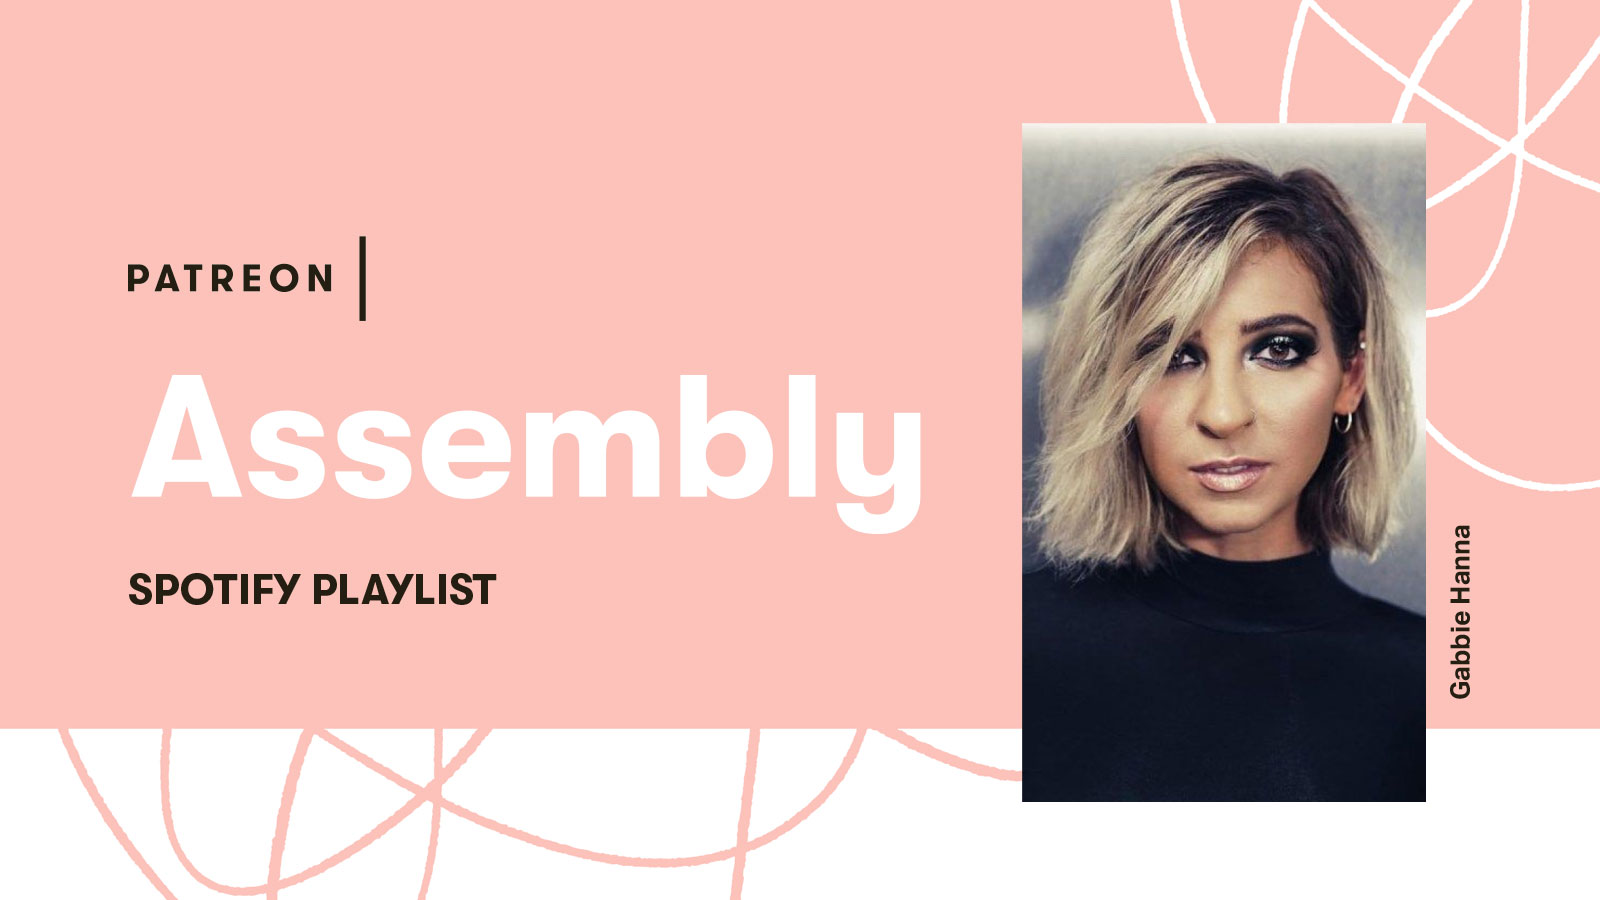 Introducing Spotify Playlist #2, Patreon Assembly